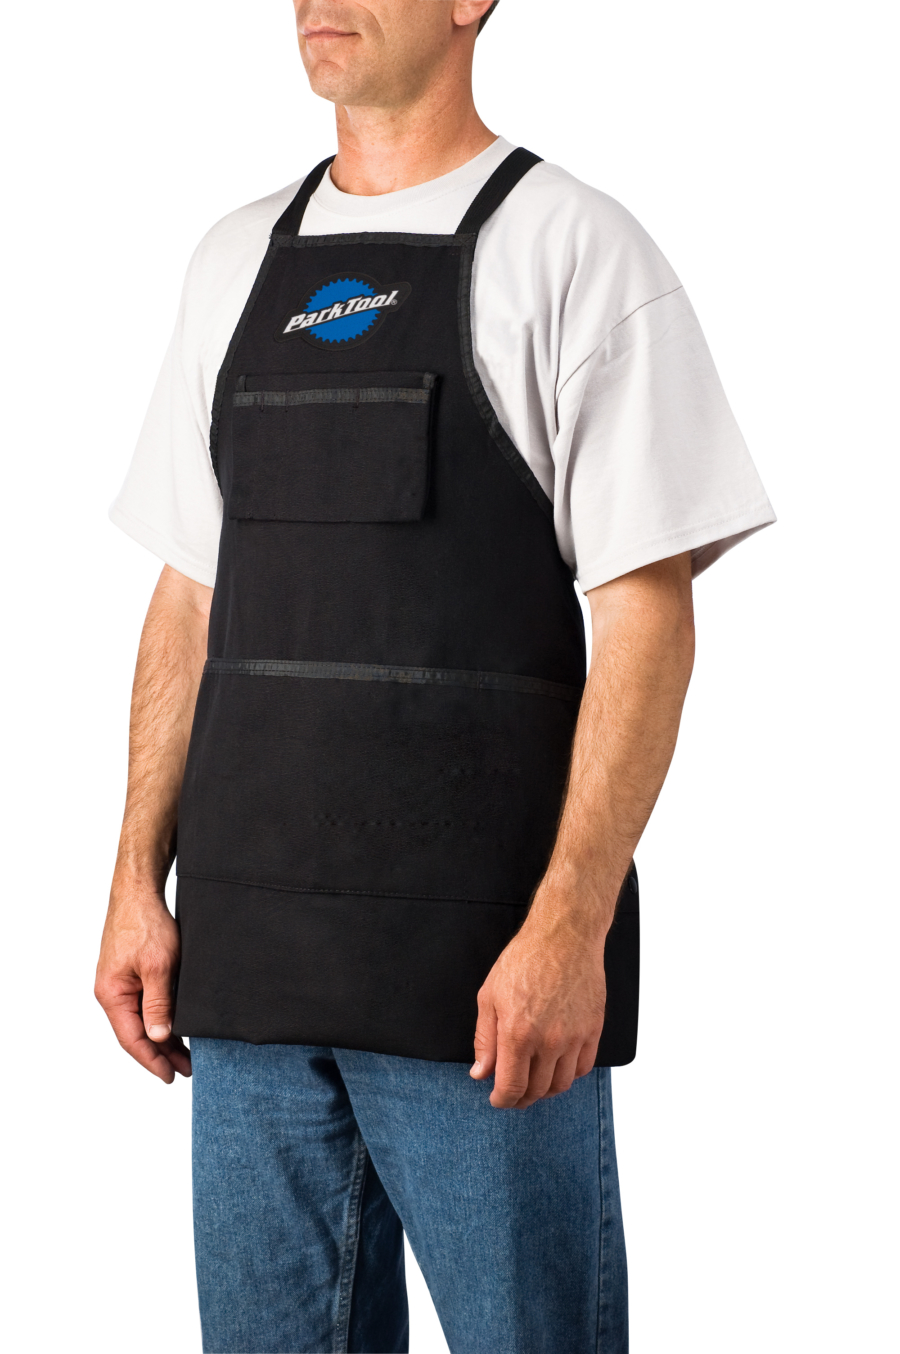 Model wearing the Park Tool SA-3, Heavy Duty Shop Apron, enlarged